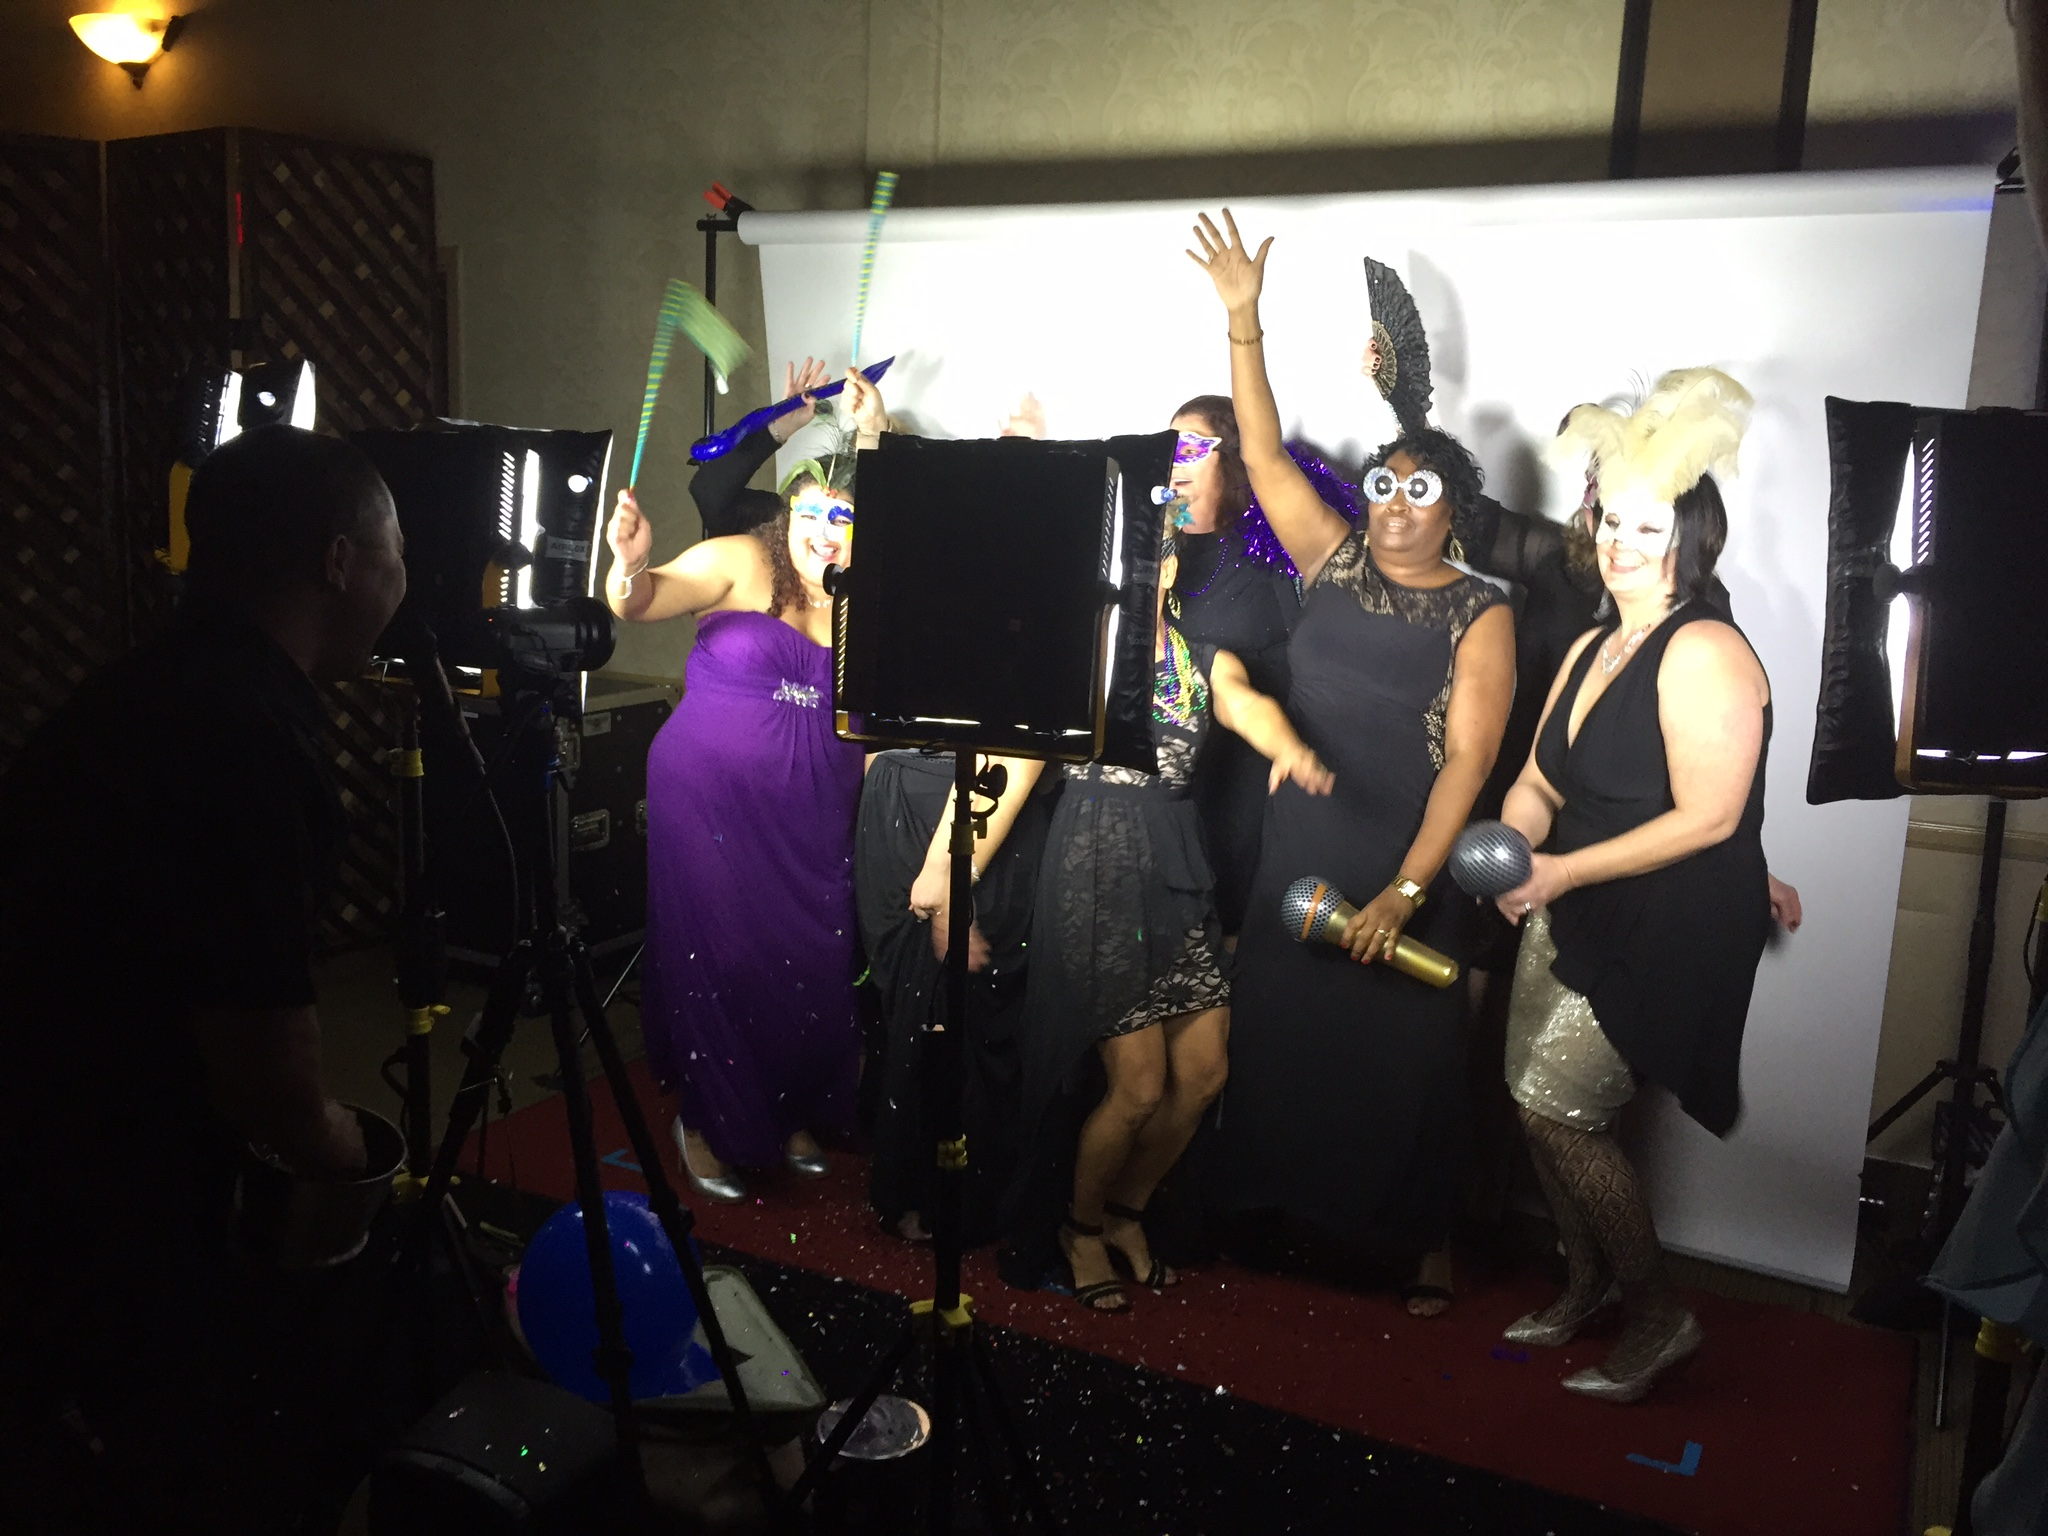 Pacific Marine Credit Union employees enjoy time in the video booth provided by DJ Kanoya Productions.The company's holiday party took place at South Coast Winery in Temecala, CA.